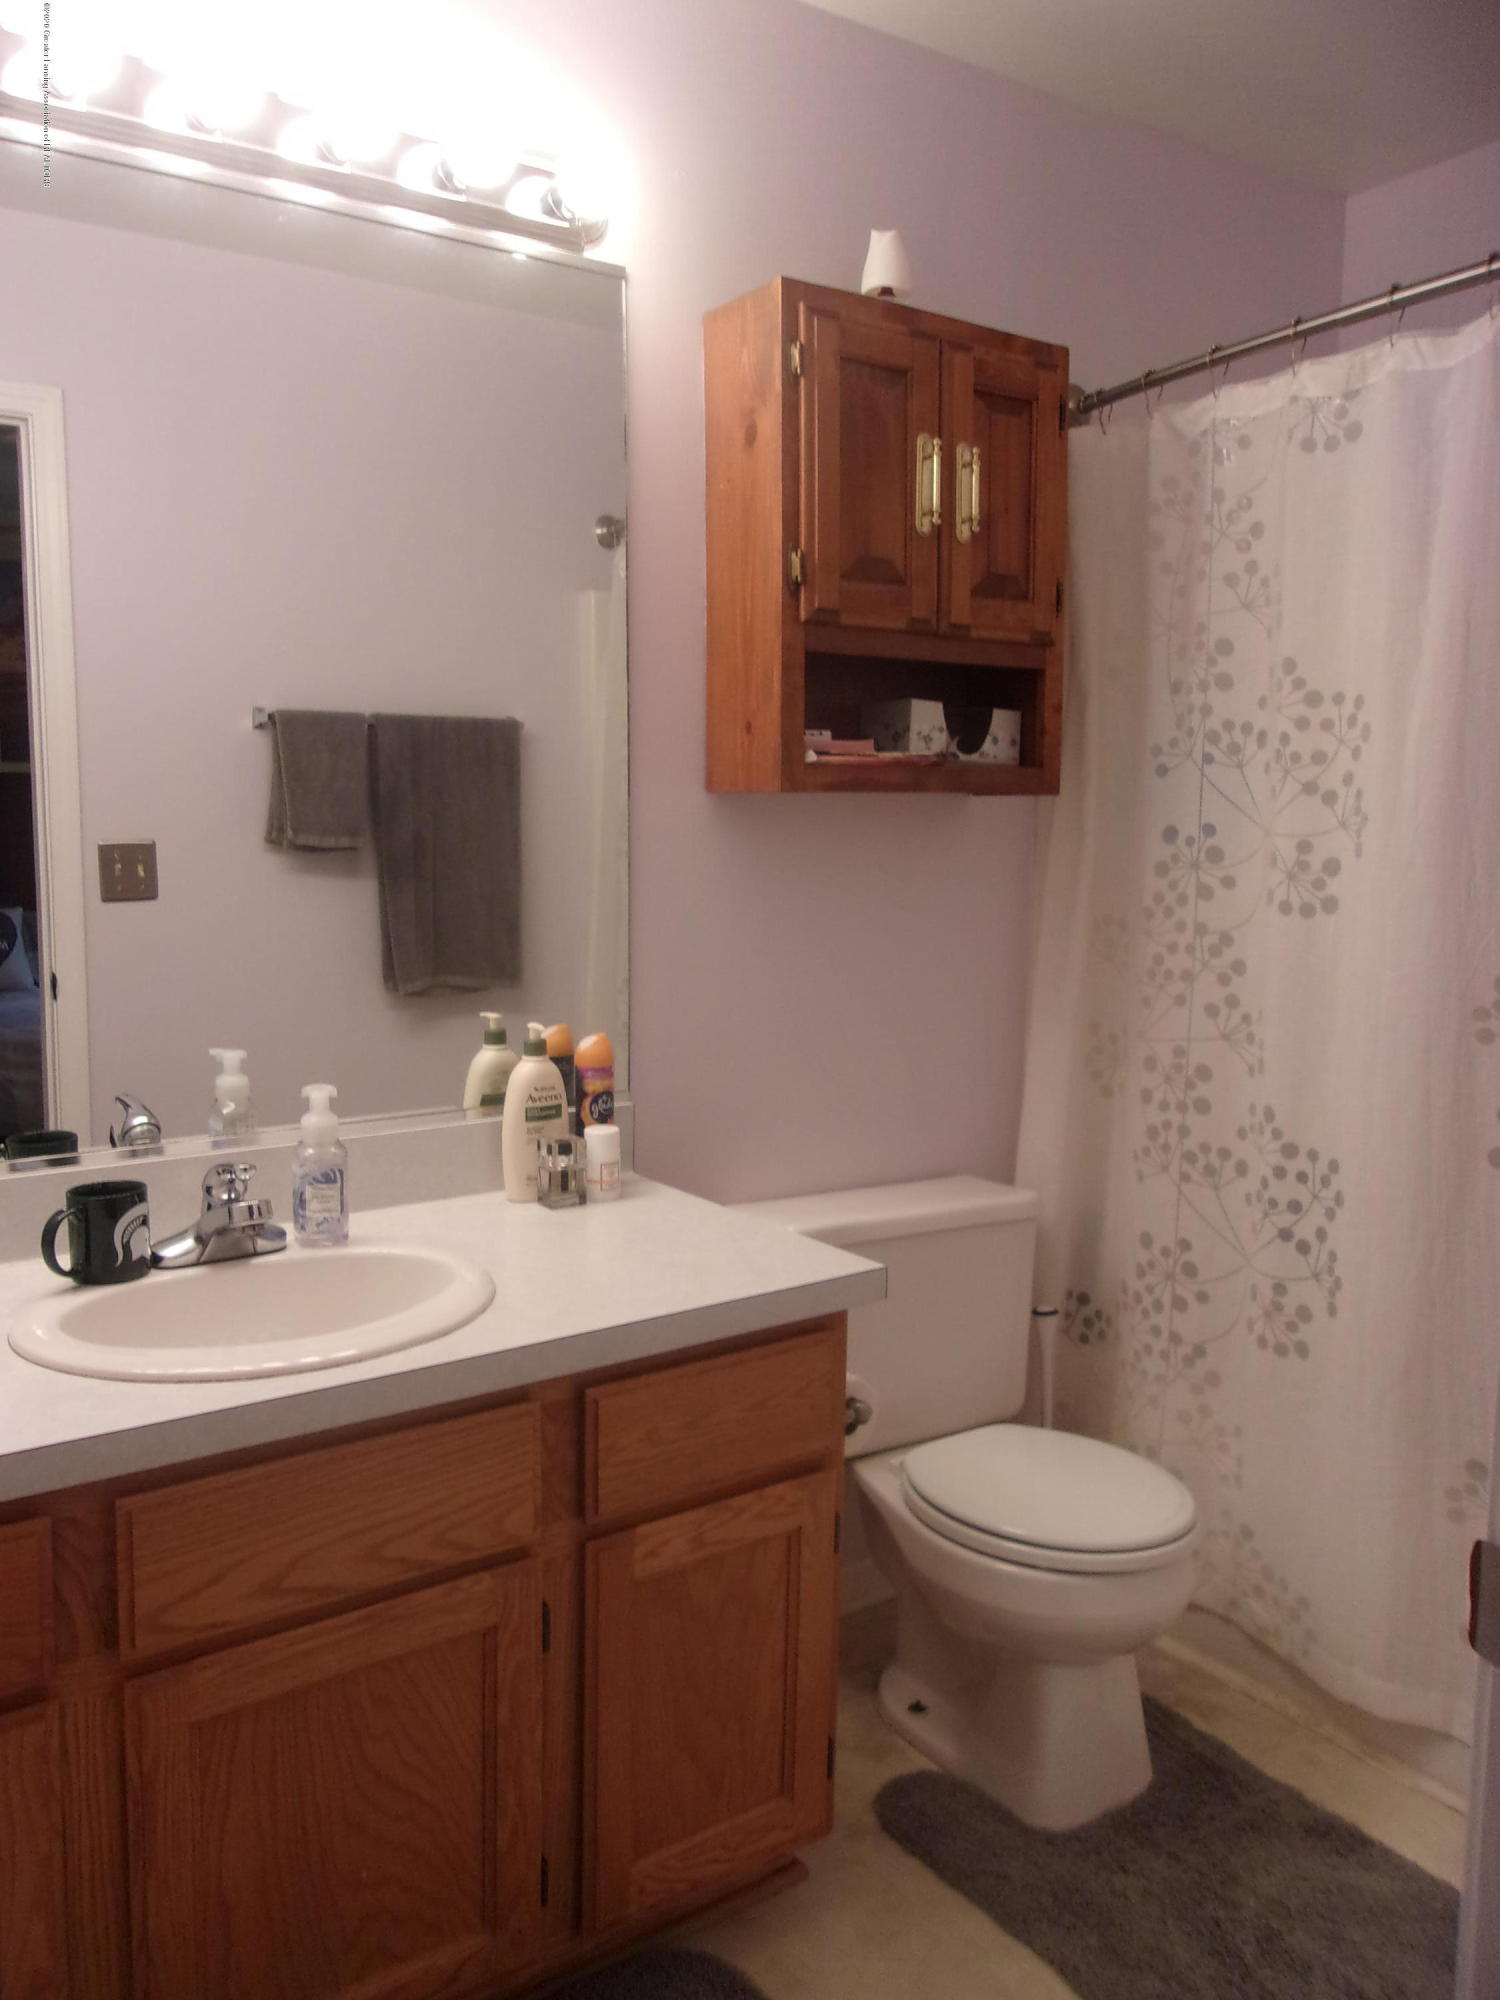 3991 Windy Heights Dr - 100_0993 - 25